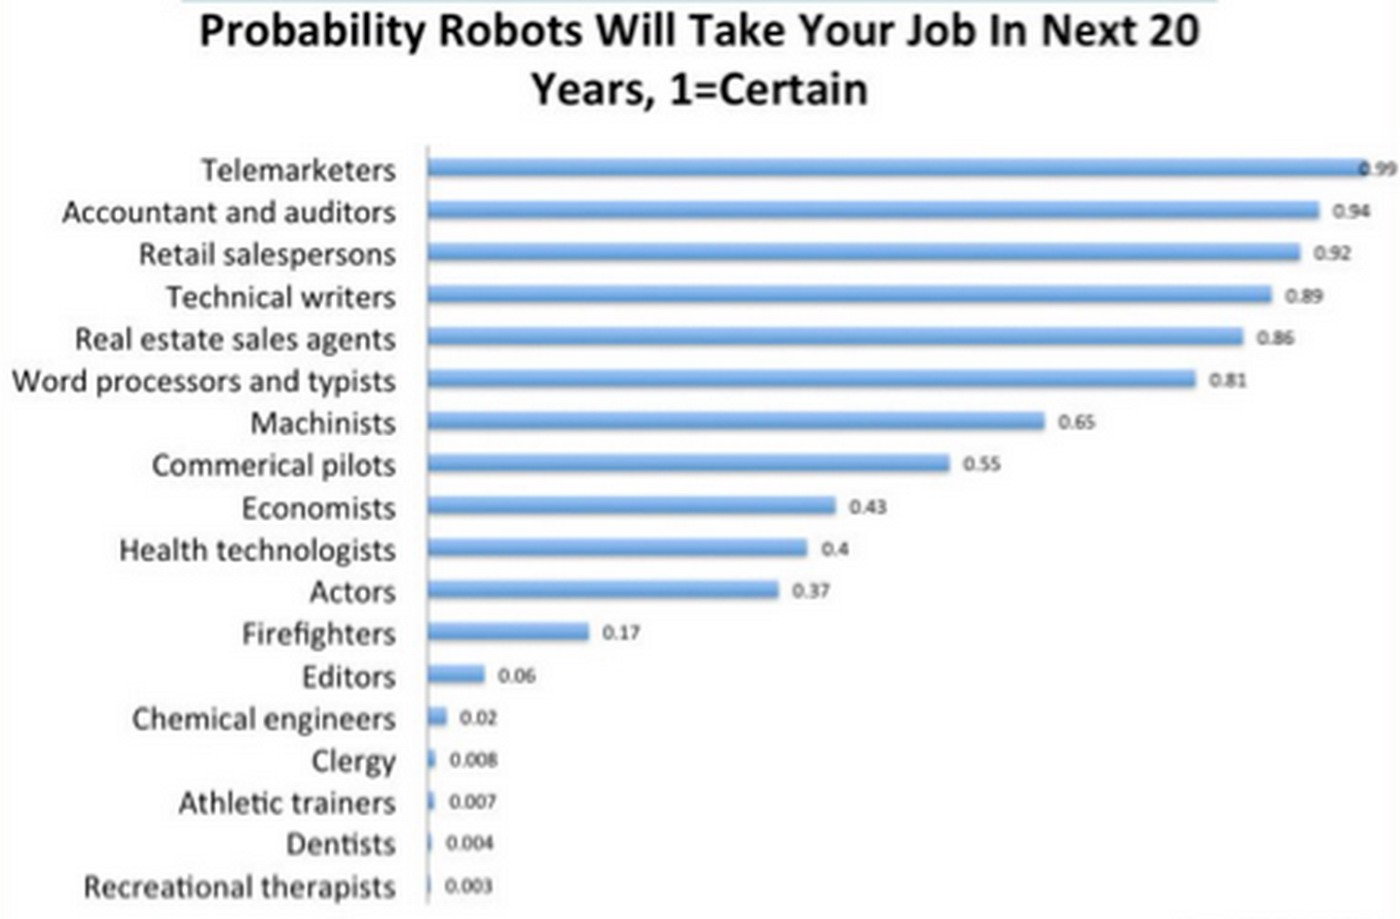 The Future of Work? The Robot Takeover is Already Here